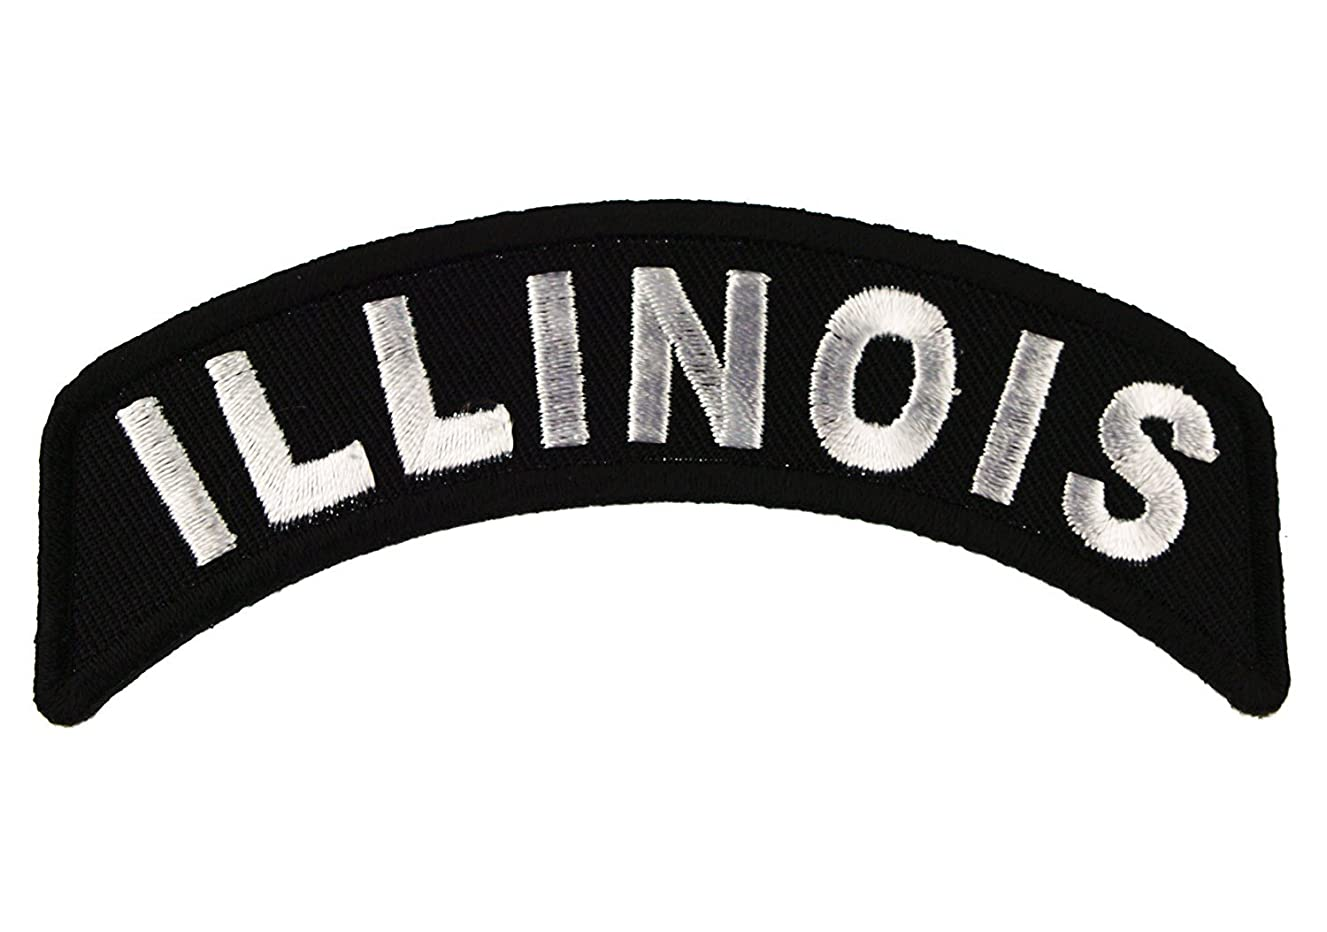 Illinois State Rocker Iron or Sew on Embroidered Shoulder Patch D37